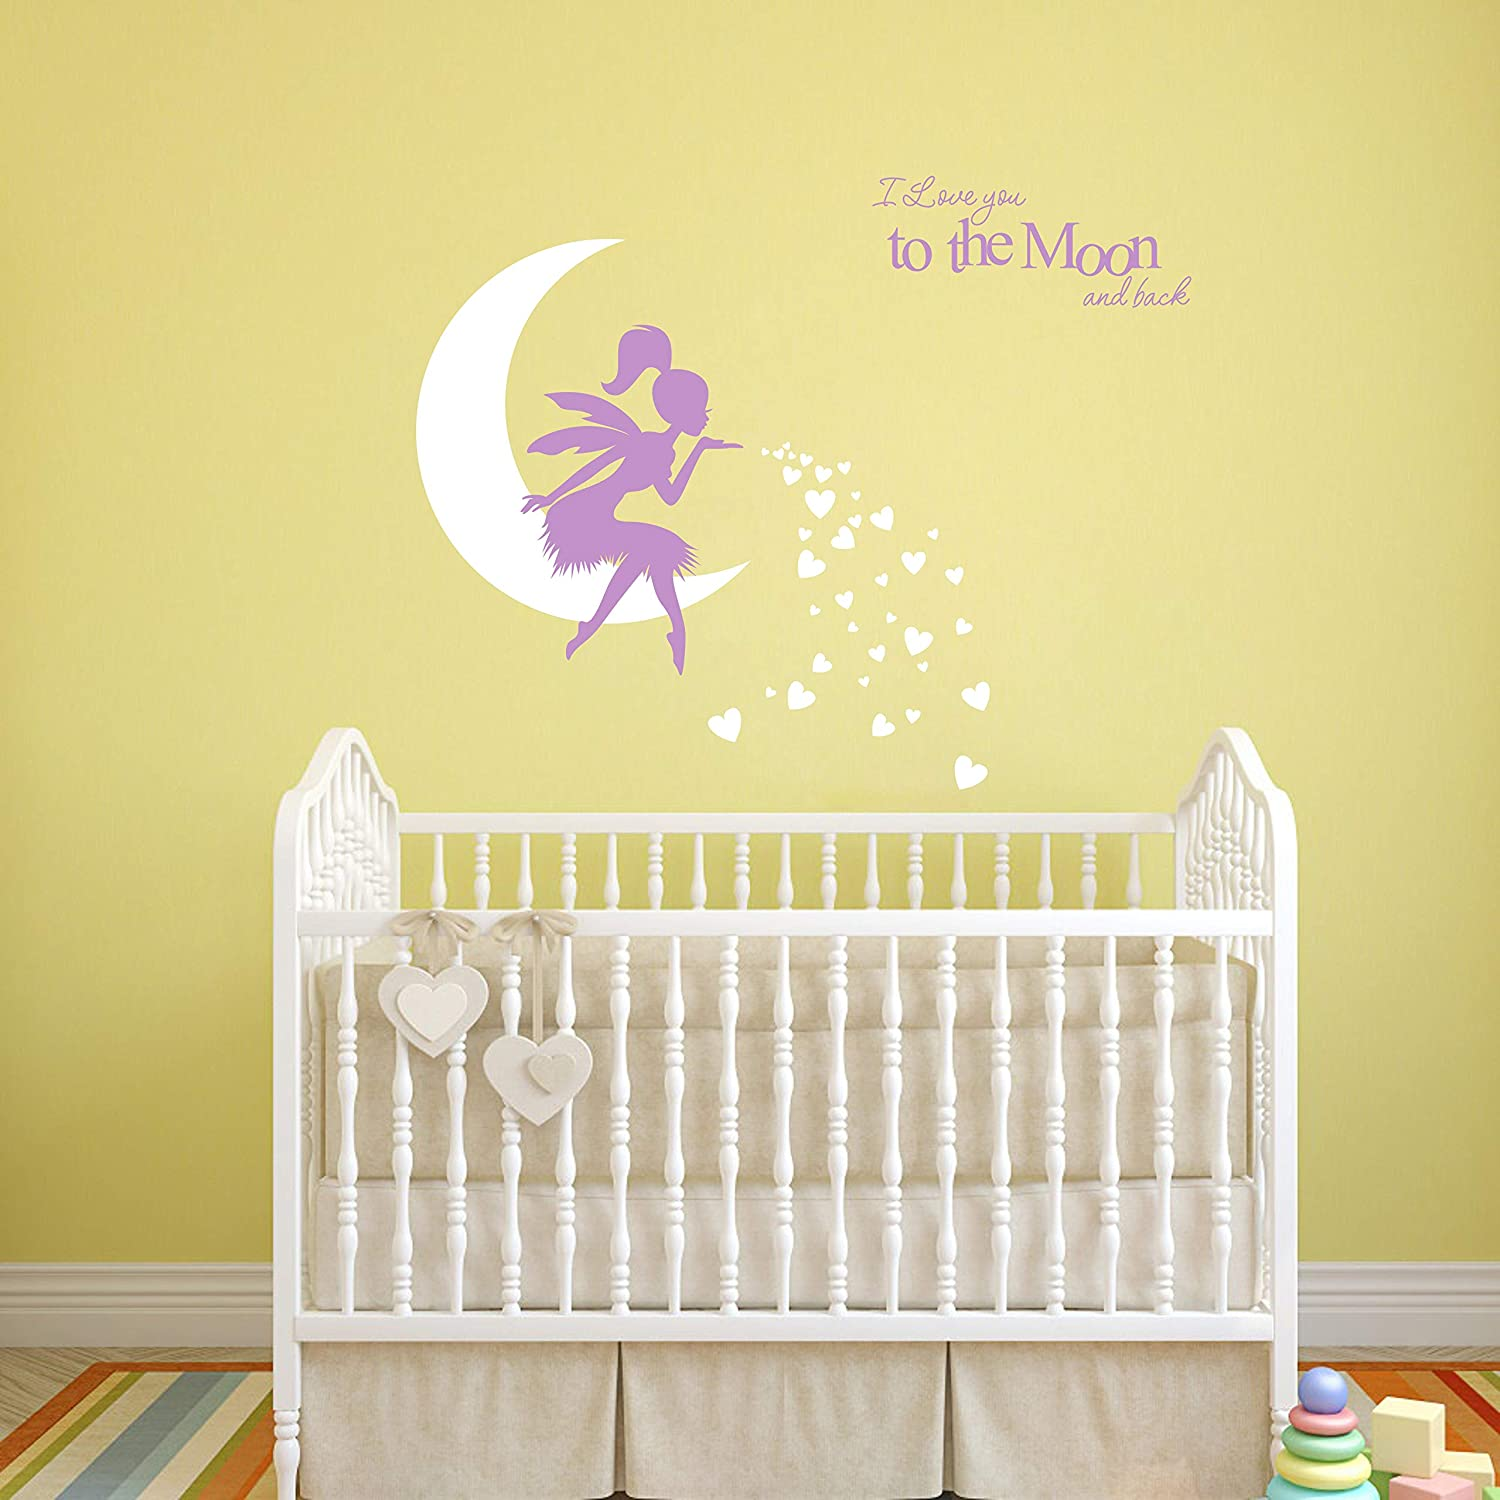 Amazon Com Fairy Wall Decal I Love You To The Moon And Back Fairy Wall Sticker For Girl Kids Bedroom Wall Decals Nursery Decor A19 Purple White Home Kitchen